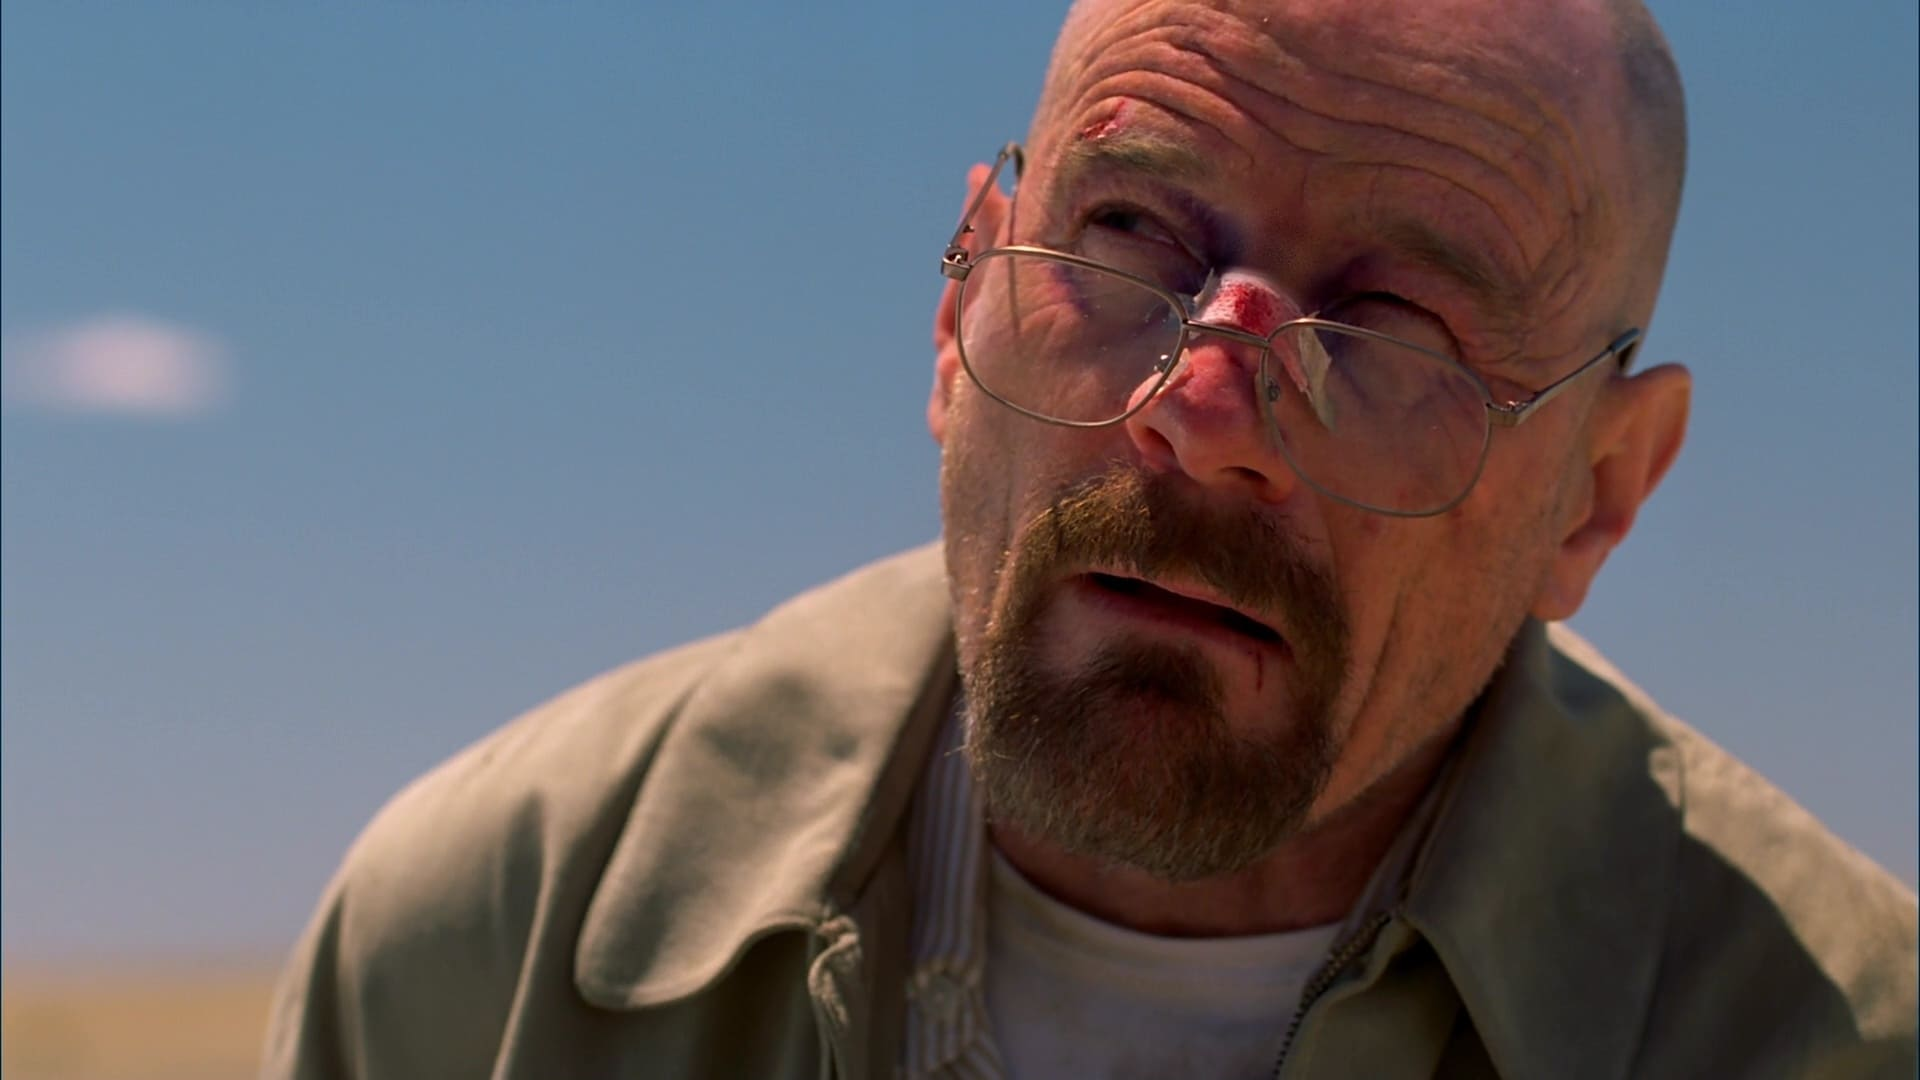 breaking bad essays Breaking bad was awesomeit was arty-fun pulp, profound but short of pretentious and never preachy, and proof that careful attention to the internal lives of its characters, the details of the.